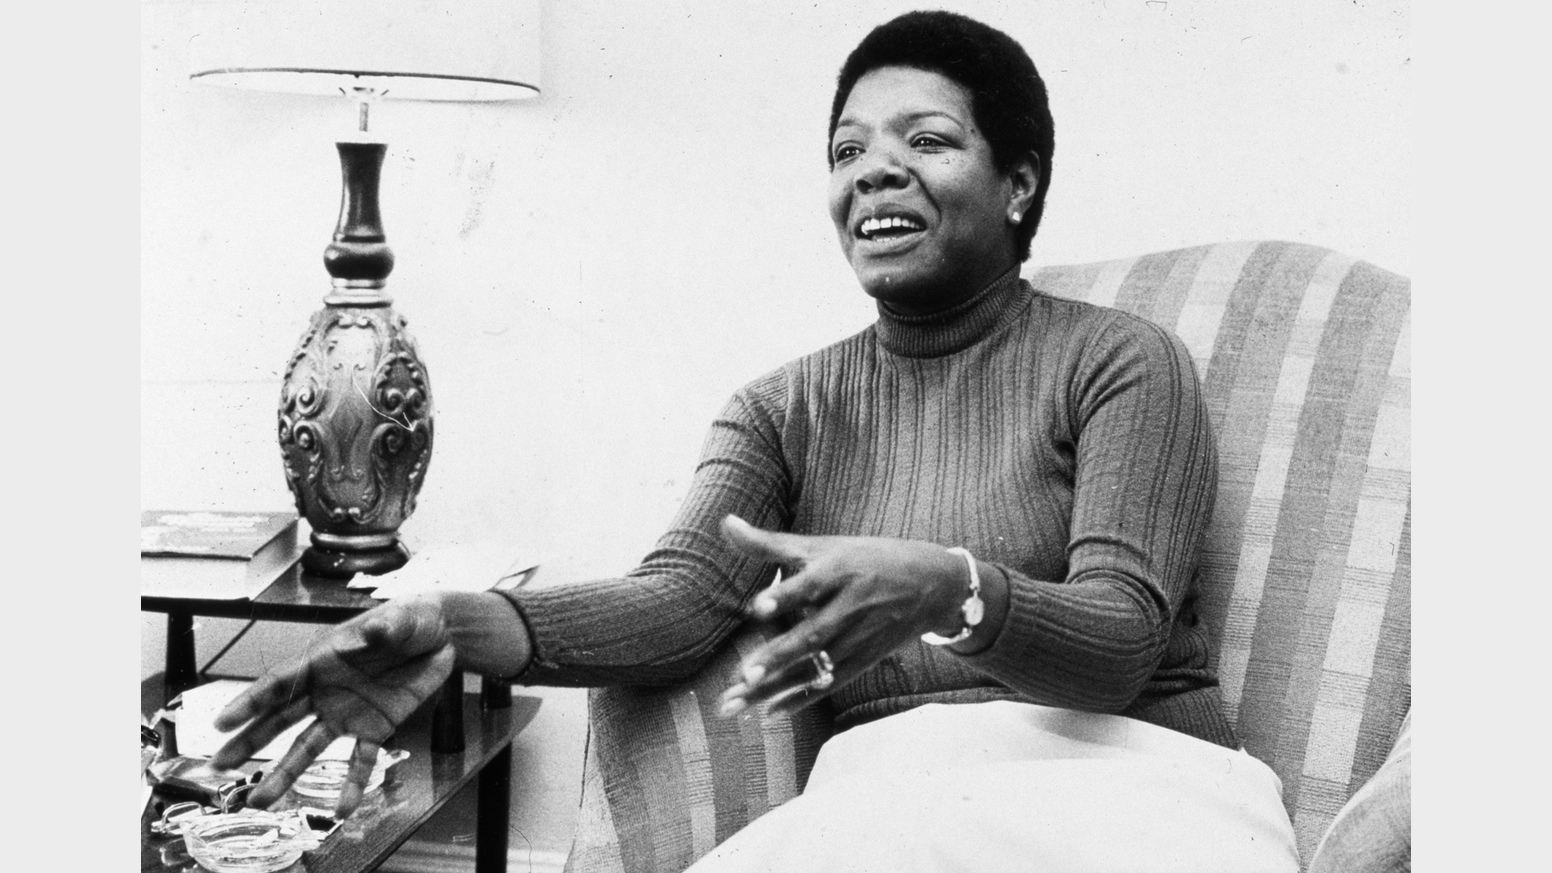 a angelou george plimpton tonight pbs s american masters series debuts a angelou and still i rise the first ever feature documentary on the writer